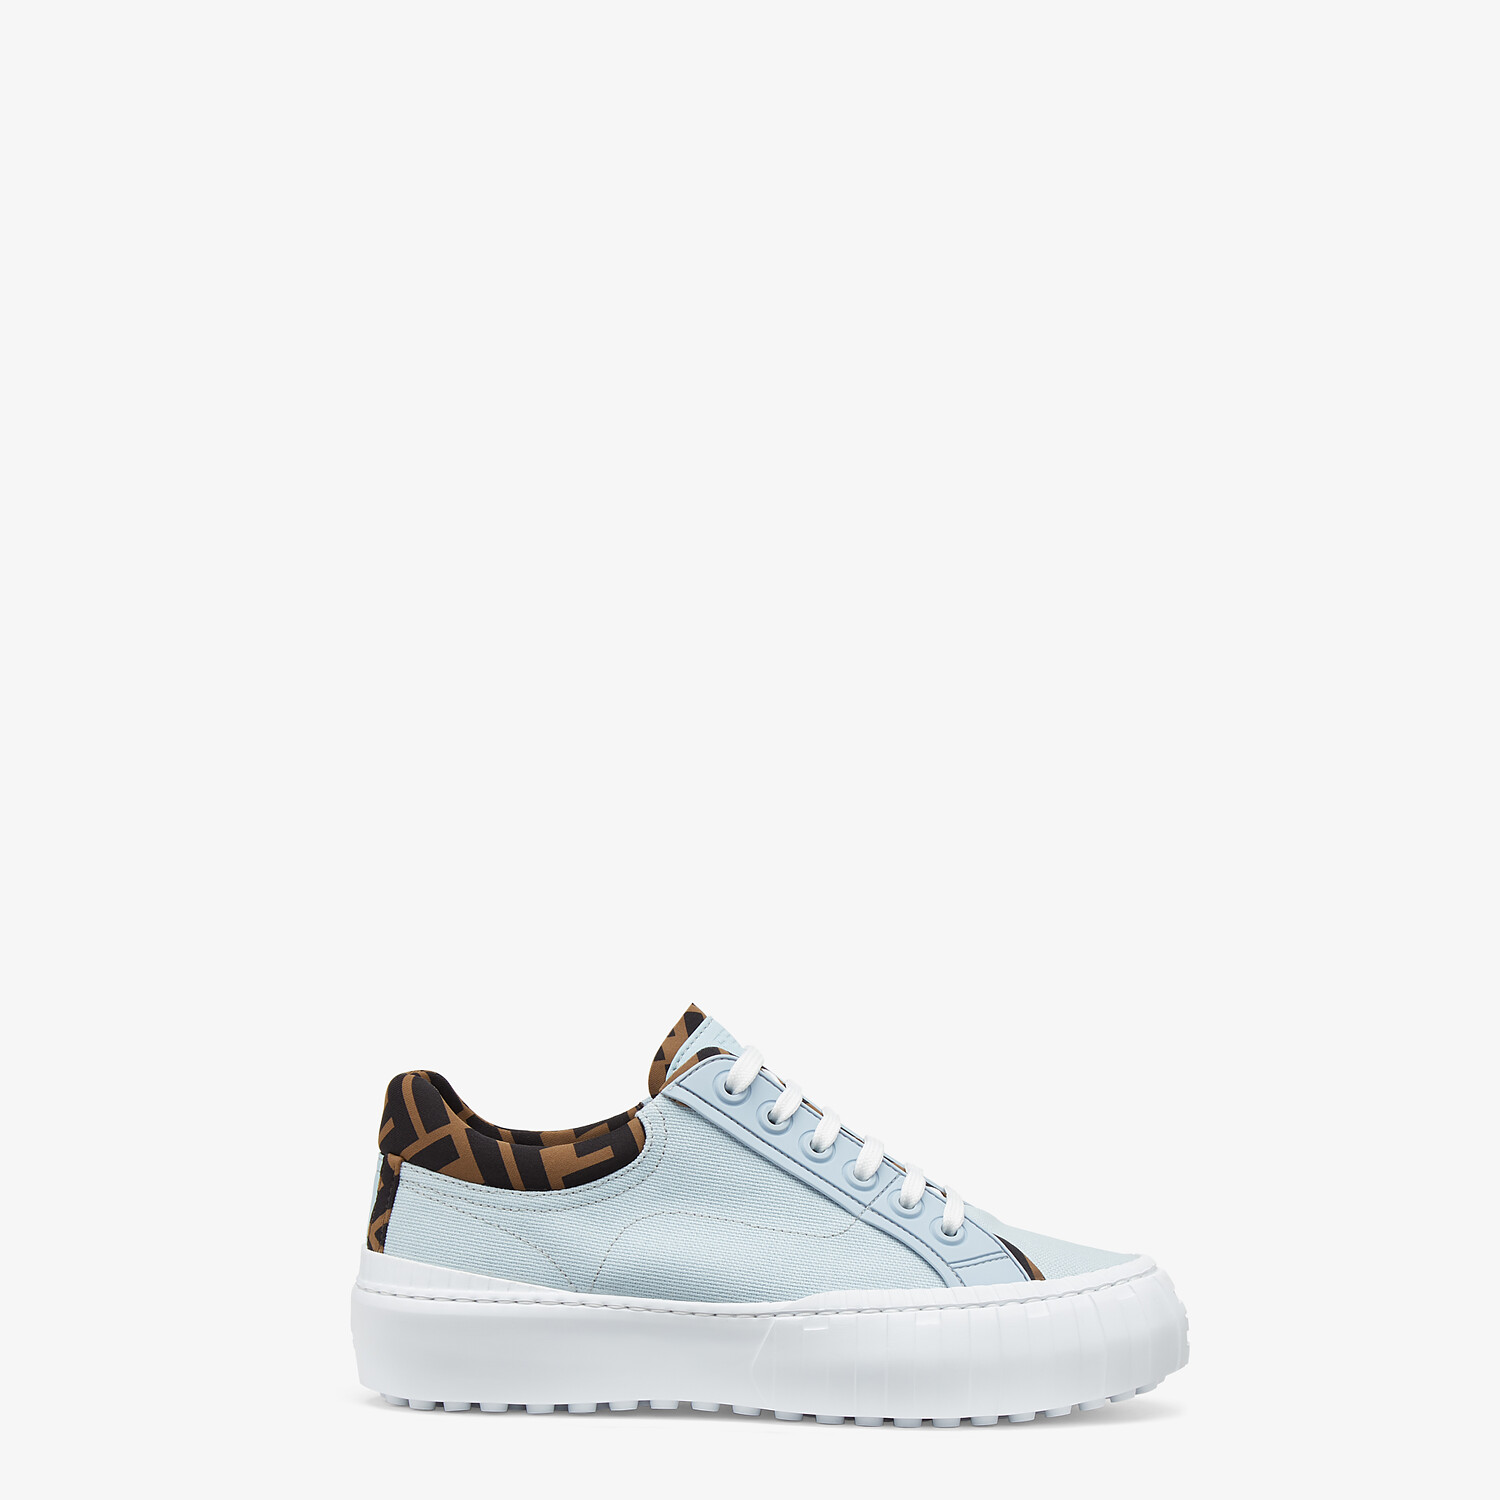 FENDI FENDI FORCE - Light blue canvas and TPU low-tops - view 1 detail